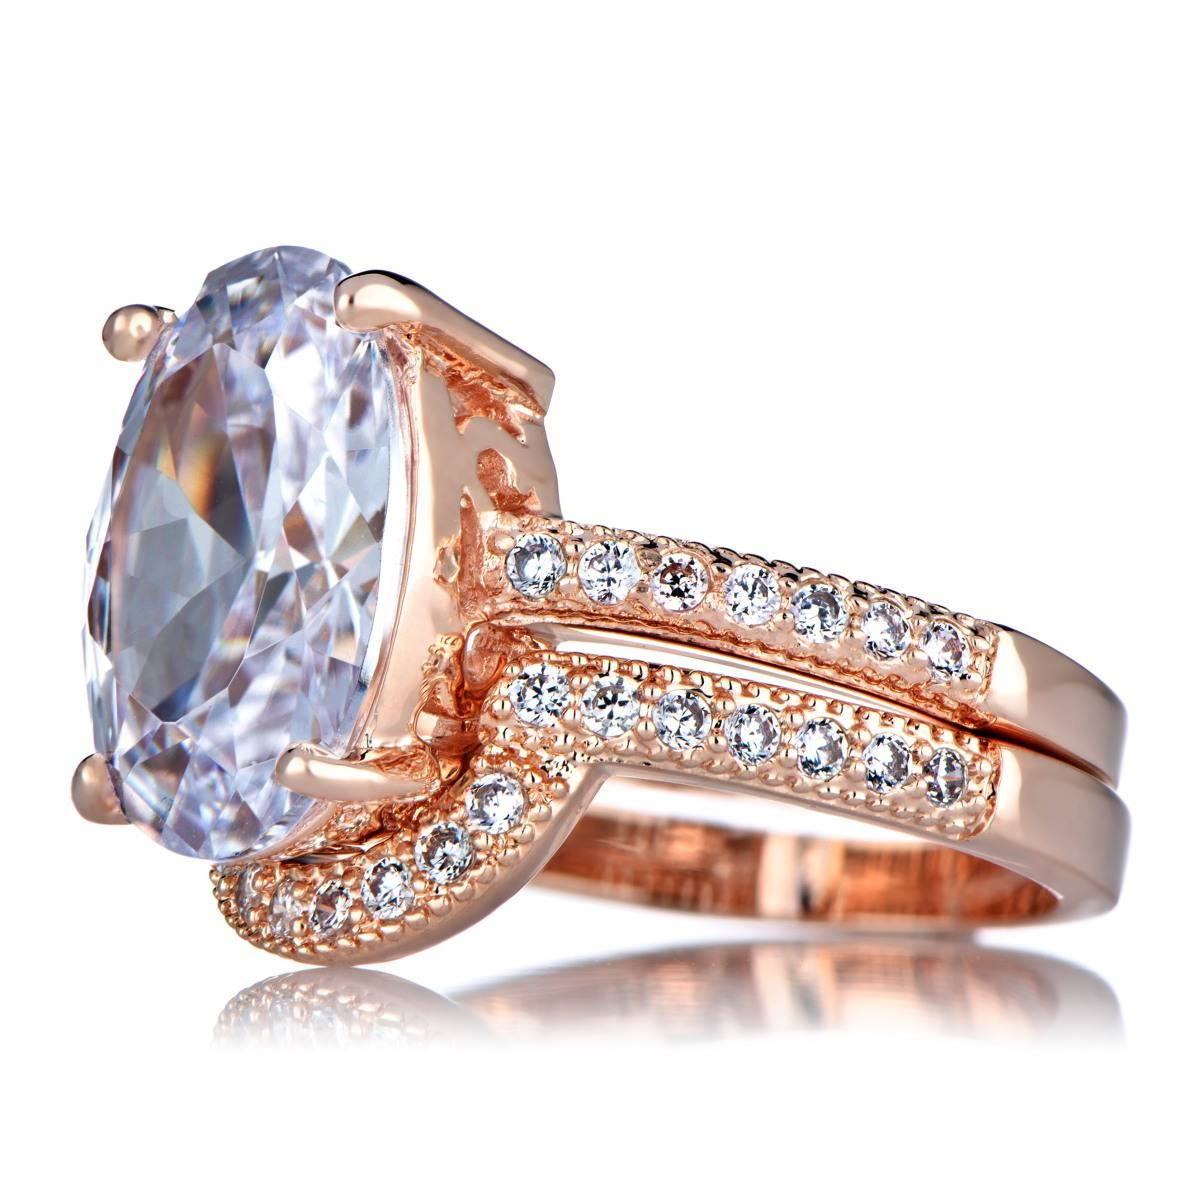 Oval Cut 5 Carat Rose Goldtone Cz Wedding Ring Set In Rose Gold Wedding Bands Sets (View 13 of 15)